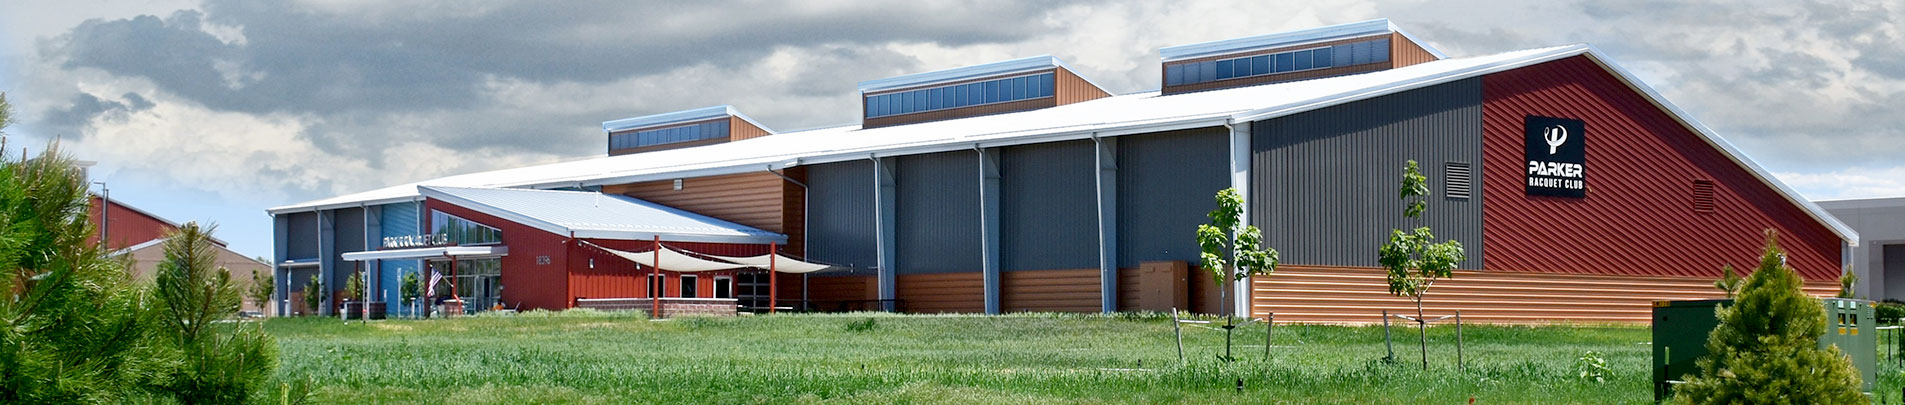 Sunward Steel Buildings | Prefab & Metal Building Manufacturer